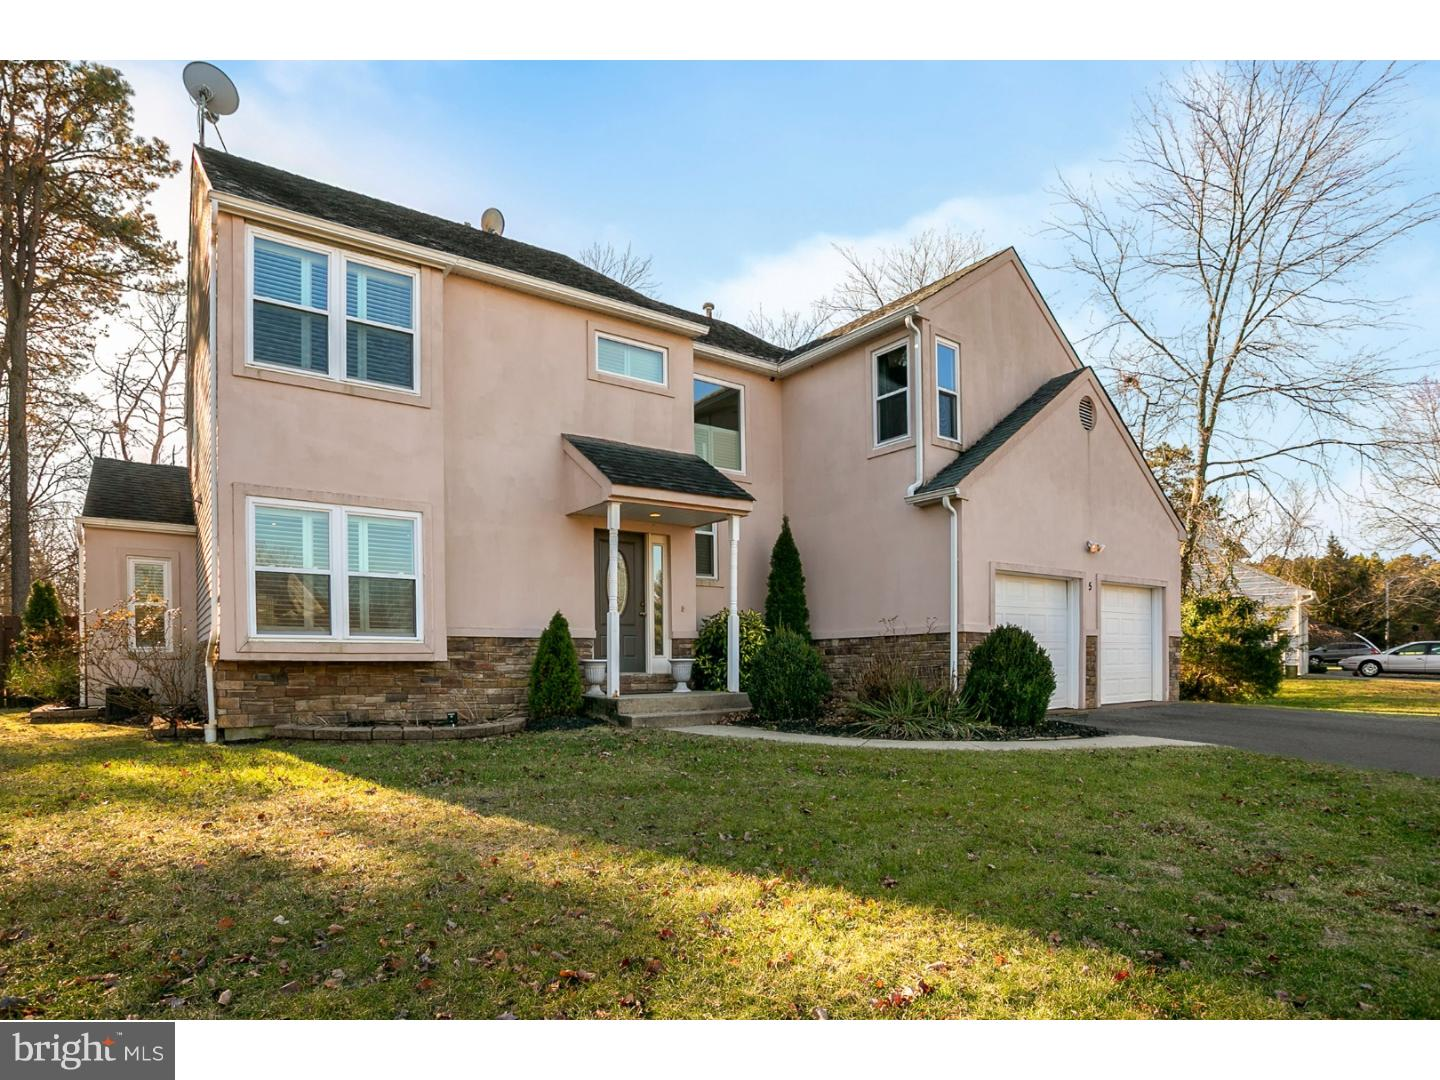 Single Family Home for Sale at 5 ELENA Court Voorhees Township, New Jersey 08043 United States